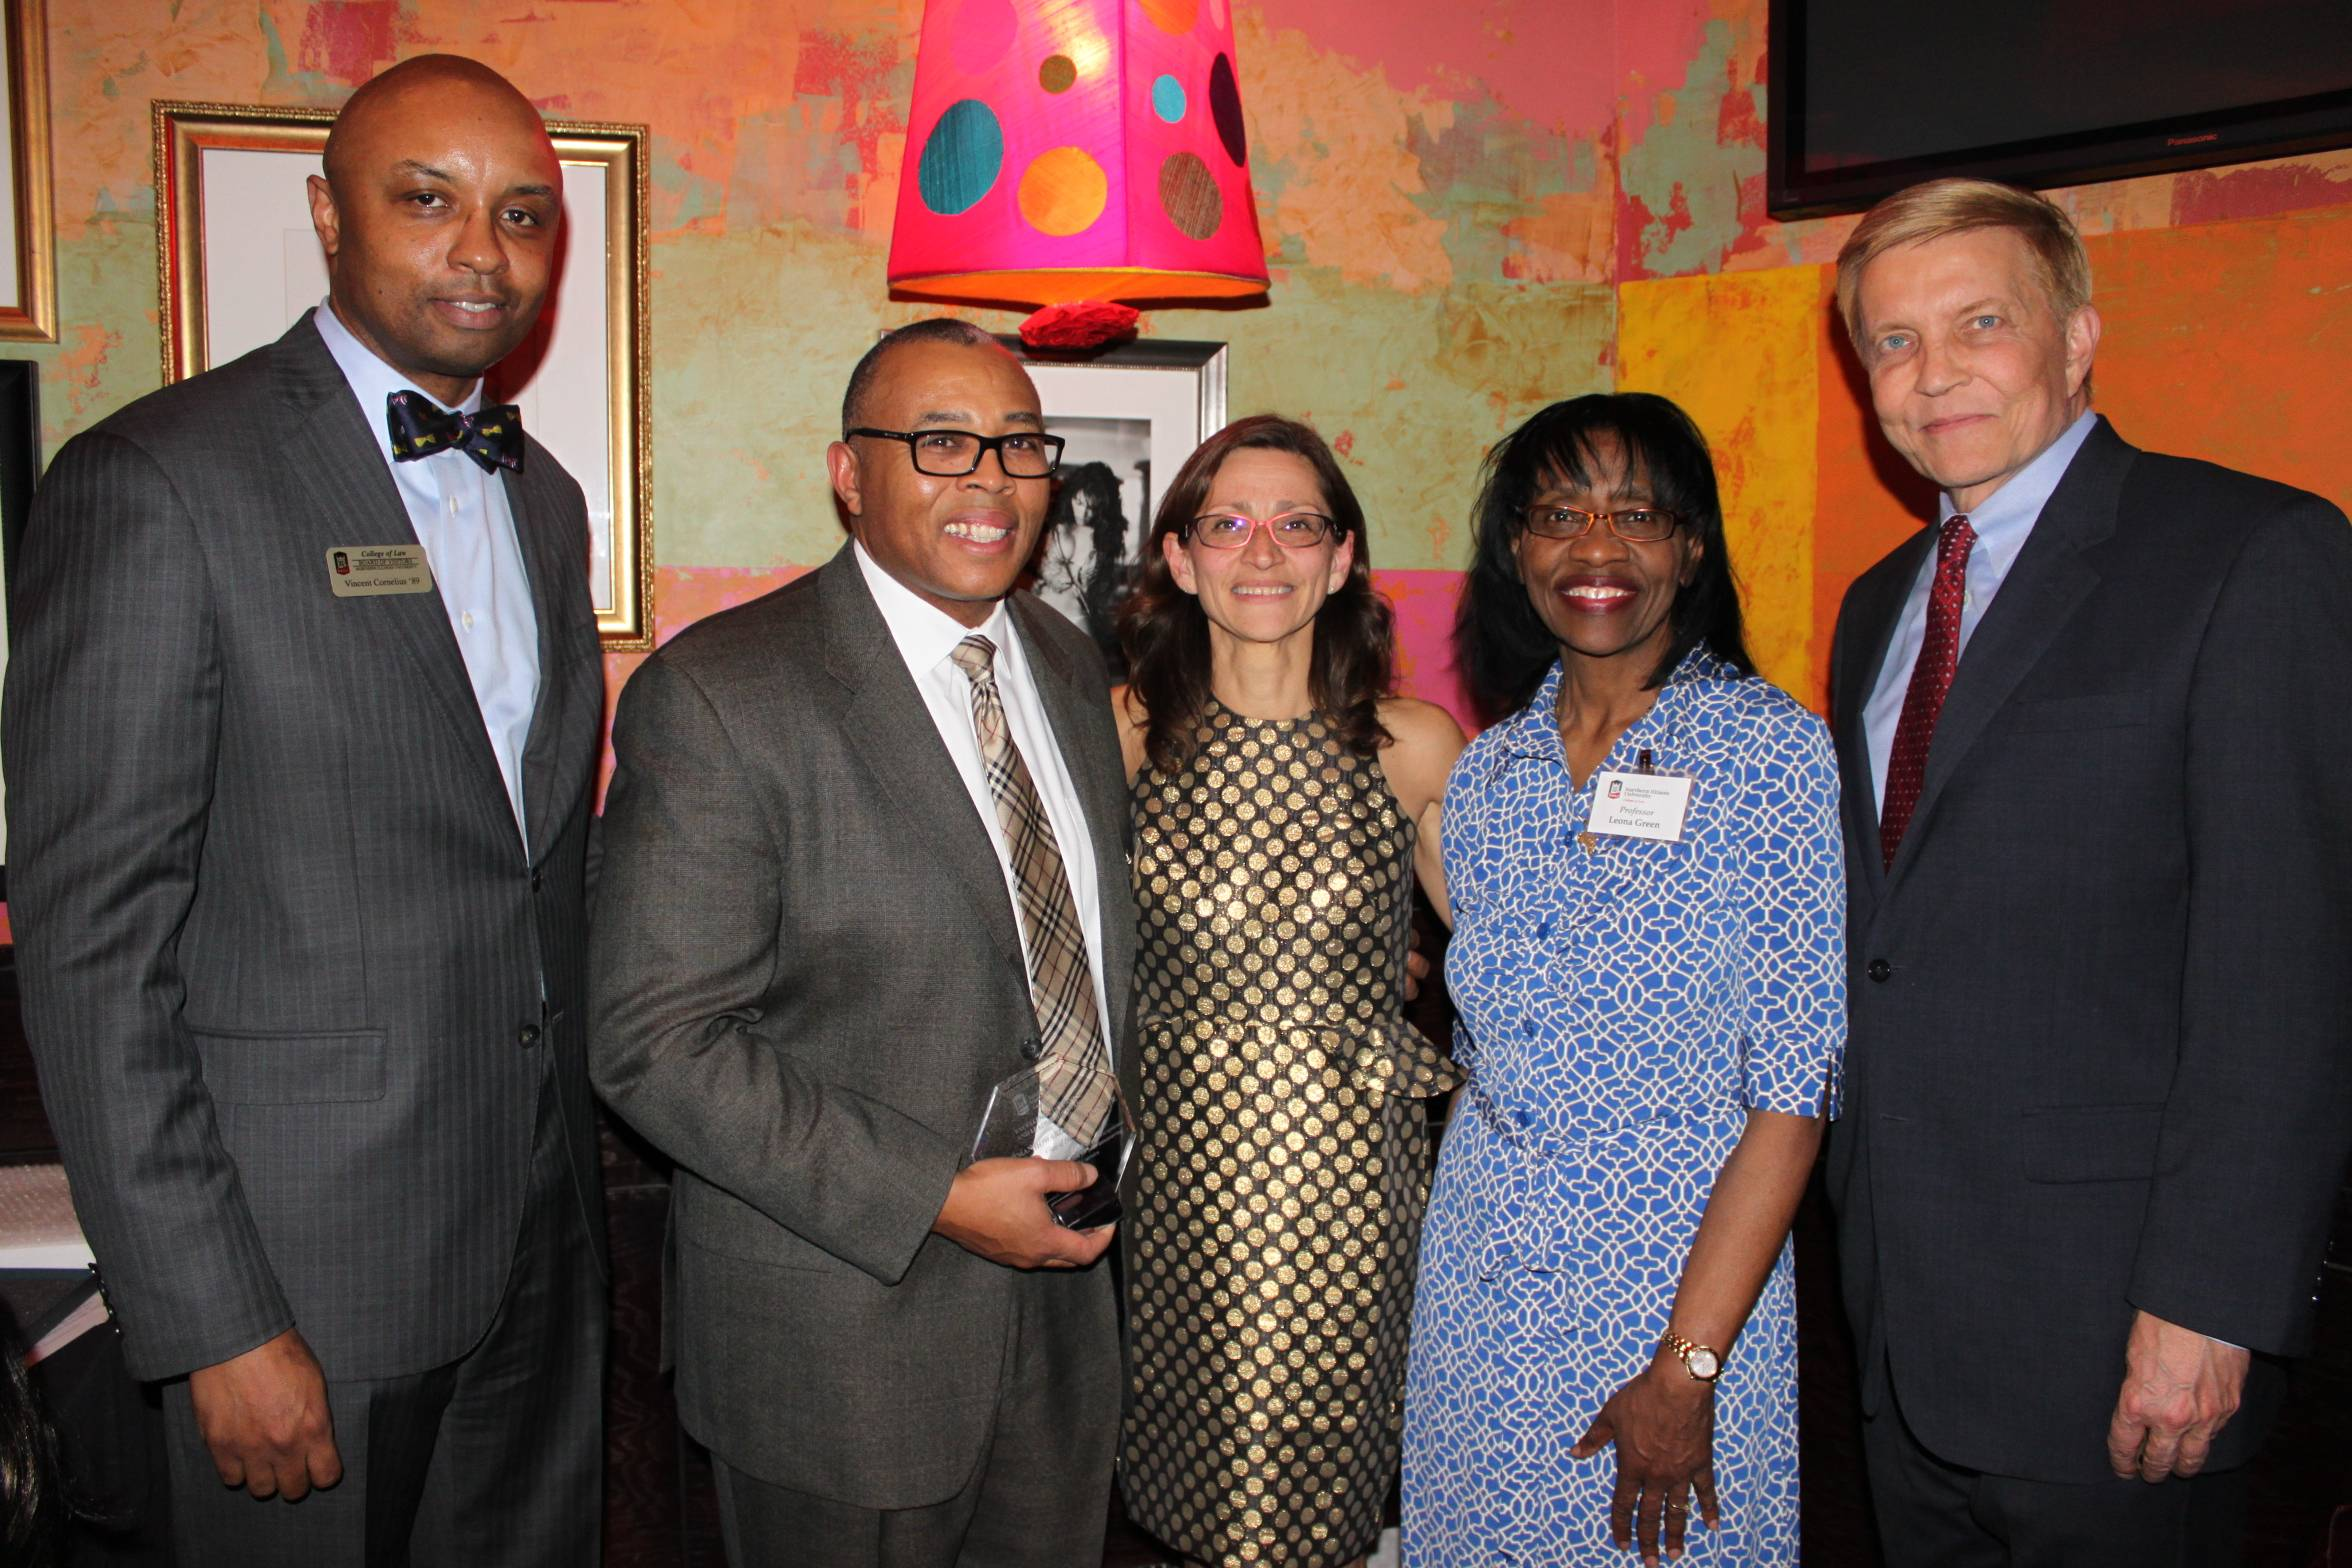 NIU College of Law held its 11th annual Minority Reception hosted by Dean Rosato and alumnus Vincent F. Cornelius ('89). Pictured, from left, are Vincent F. Cornelius ('89), 21st Ward Alderman Howard B. Brookins Jr. ('88), Dean Jennifer Rosato, Professor Leona Green, and 2nd Ward Alderman Bob Fioretti ('78).  Brookins received the Excellence in Service and Leadership Award and Professor Green was honored for her commitment to students, service to NIU Law, and being a champion of diversity.